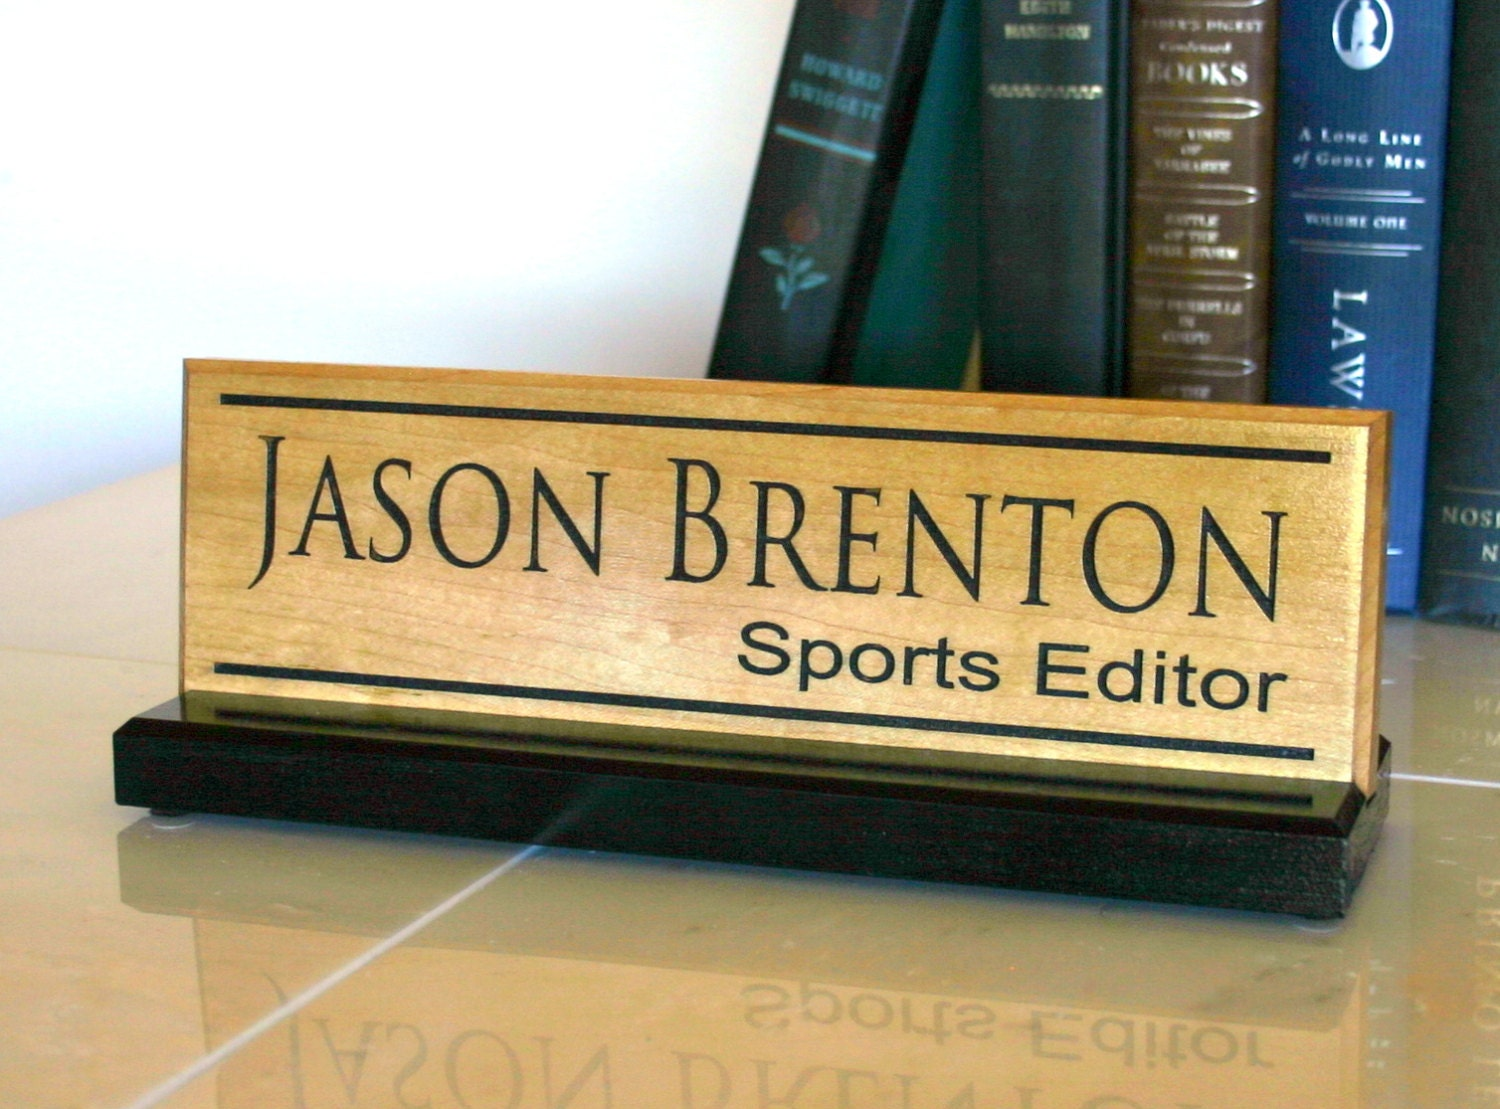 Desk Name Plate Personalized Desk Name Sign Door Name Plate. Whitewashed Farmhouse Table. Wireless Headset For Desk Phone. Target Dining Tables. Mainstays Corner Desk. Stein World Chest Of Drawers. White Twin Loft Bed With Desk. Storage Drawers. Desk With Storage Cubes